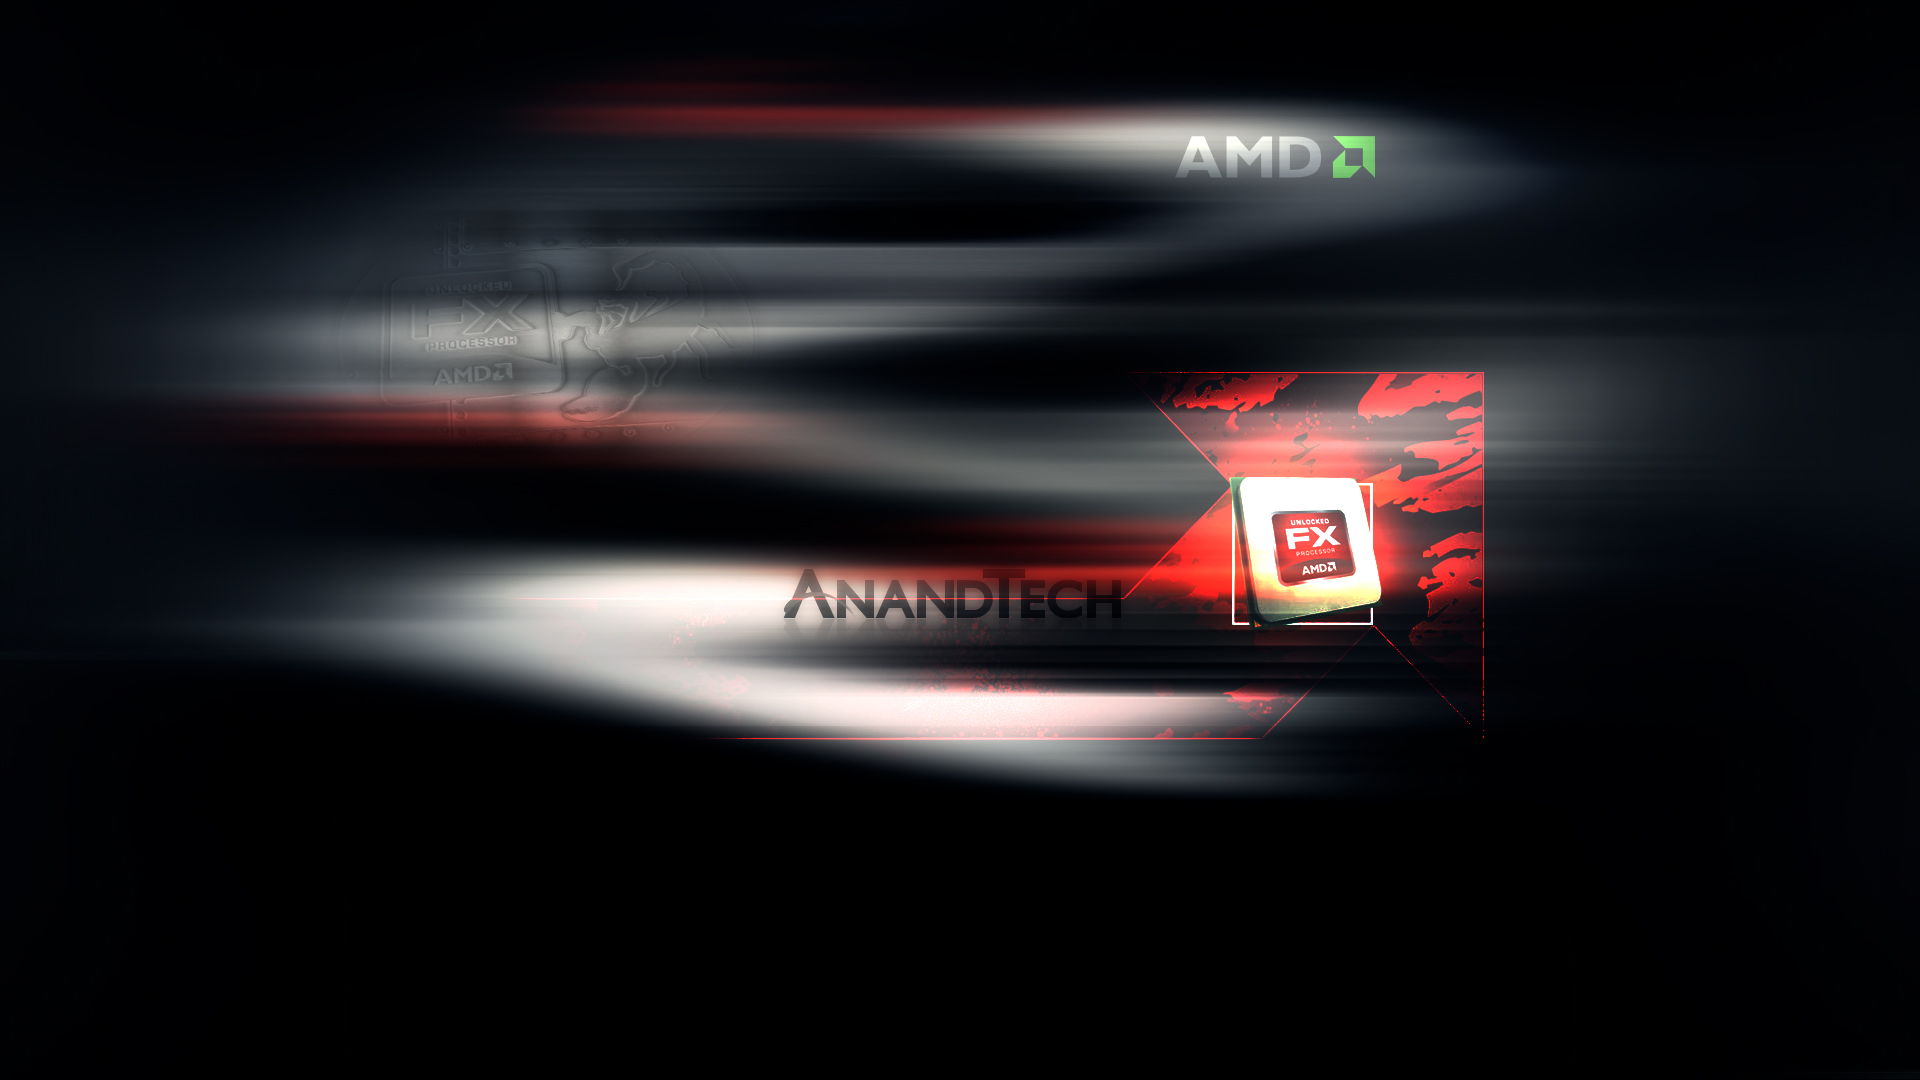 amd fx background by - photo #12